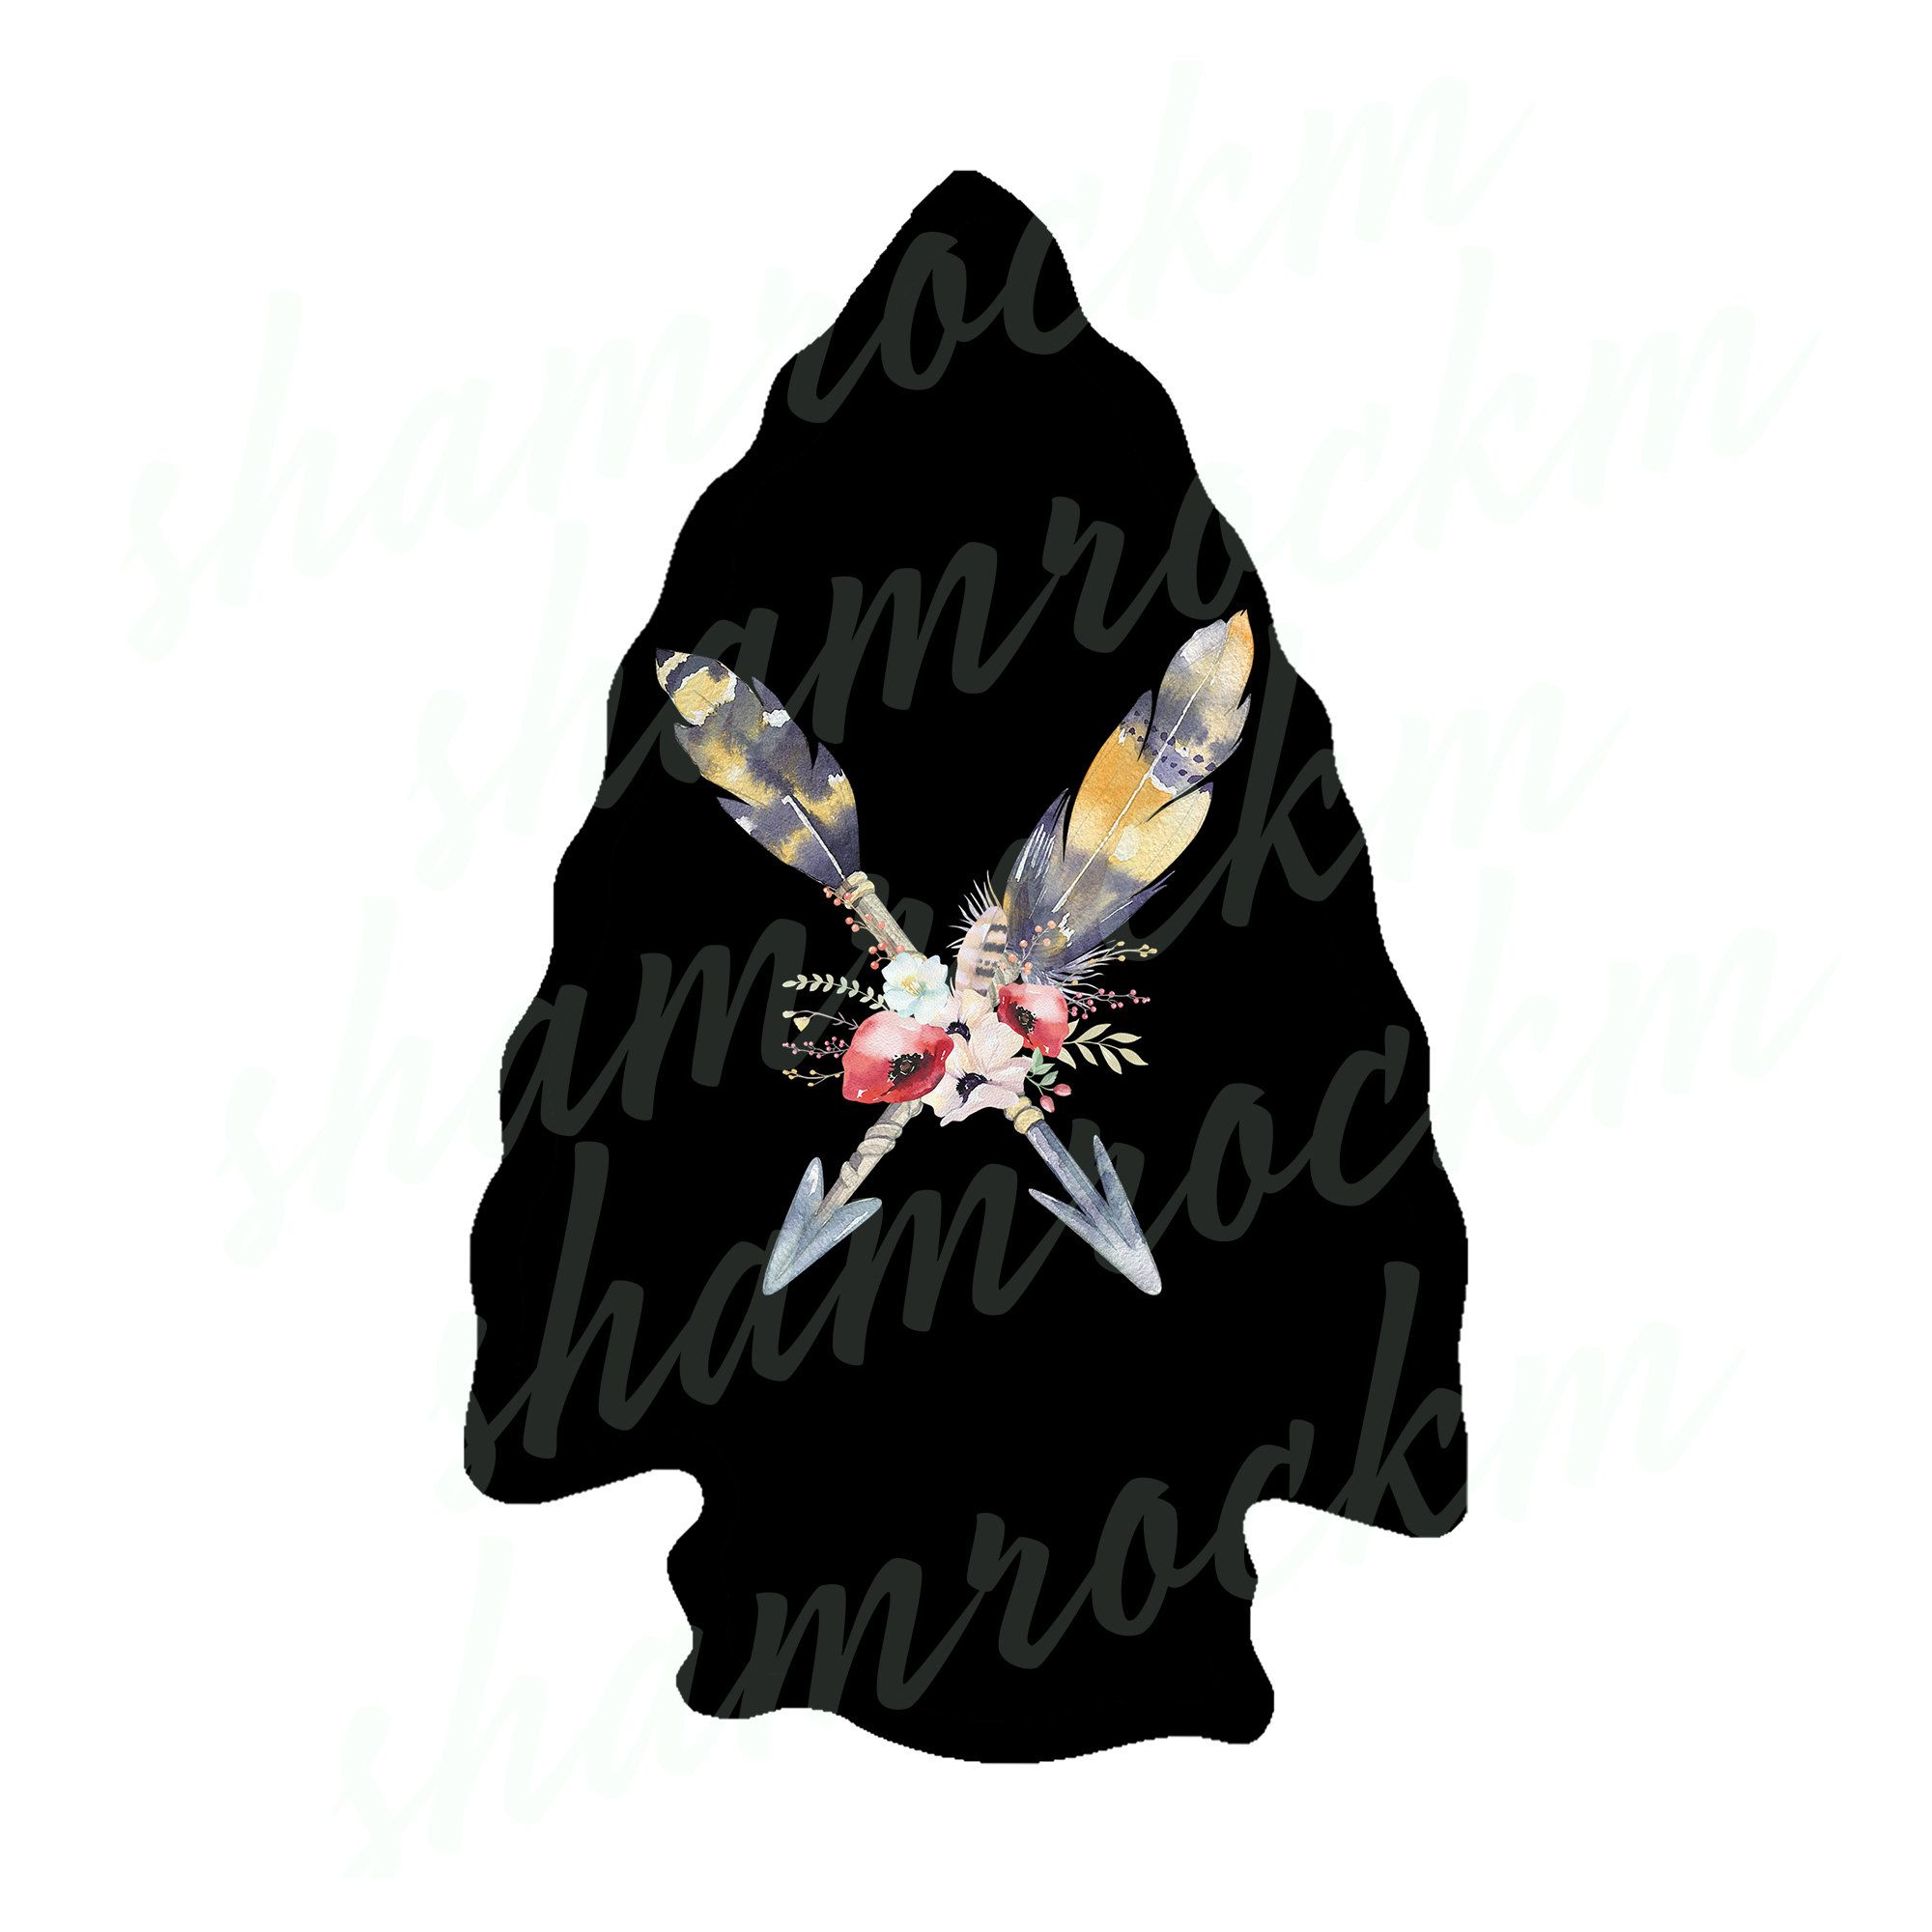 Arrowhead With Crossed Arrows Png Images With Transparent Etsy Png Images Crossed Arrows Image